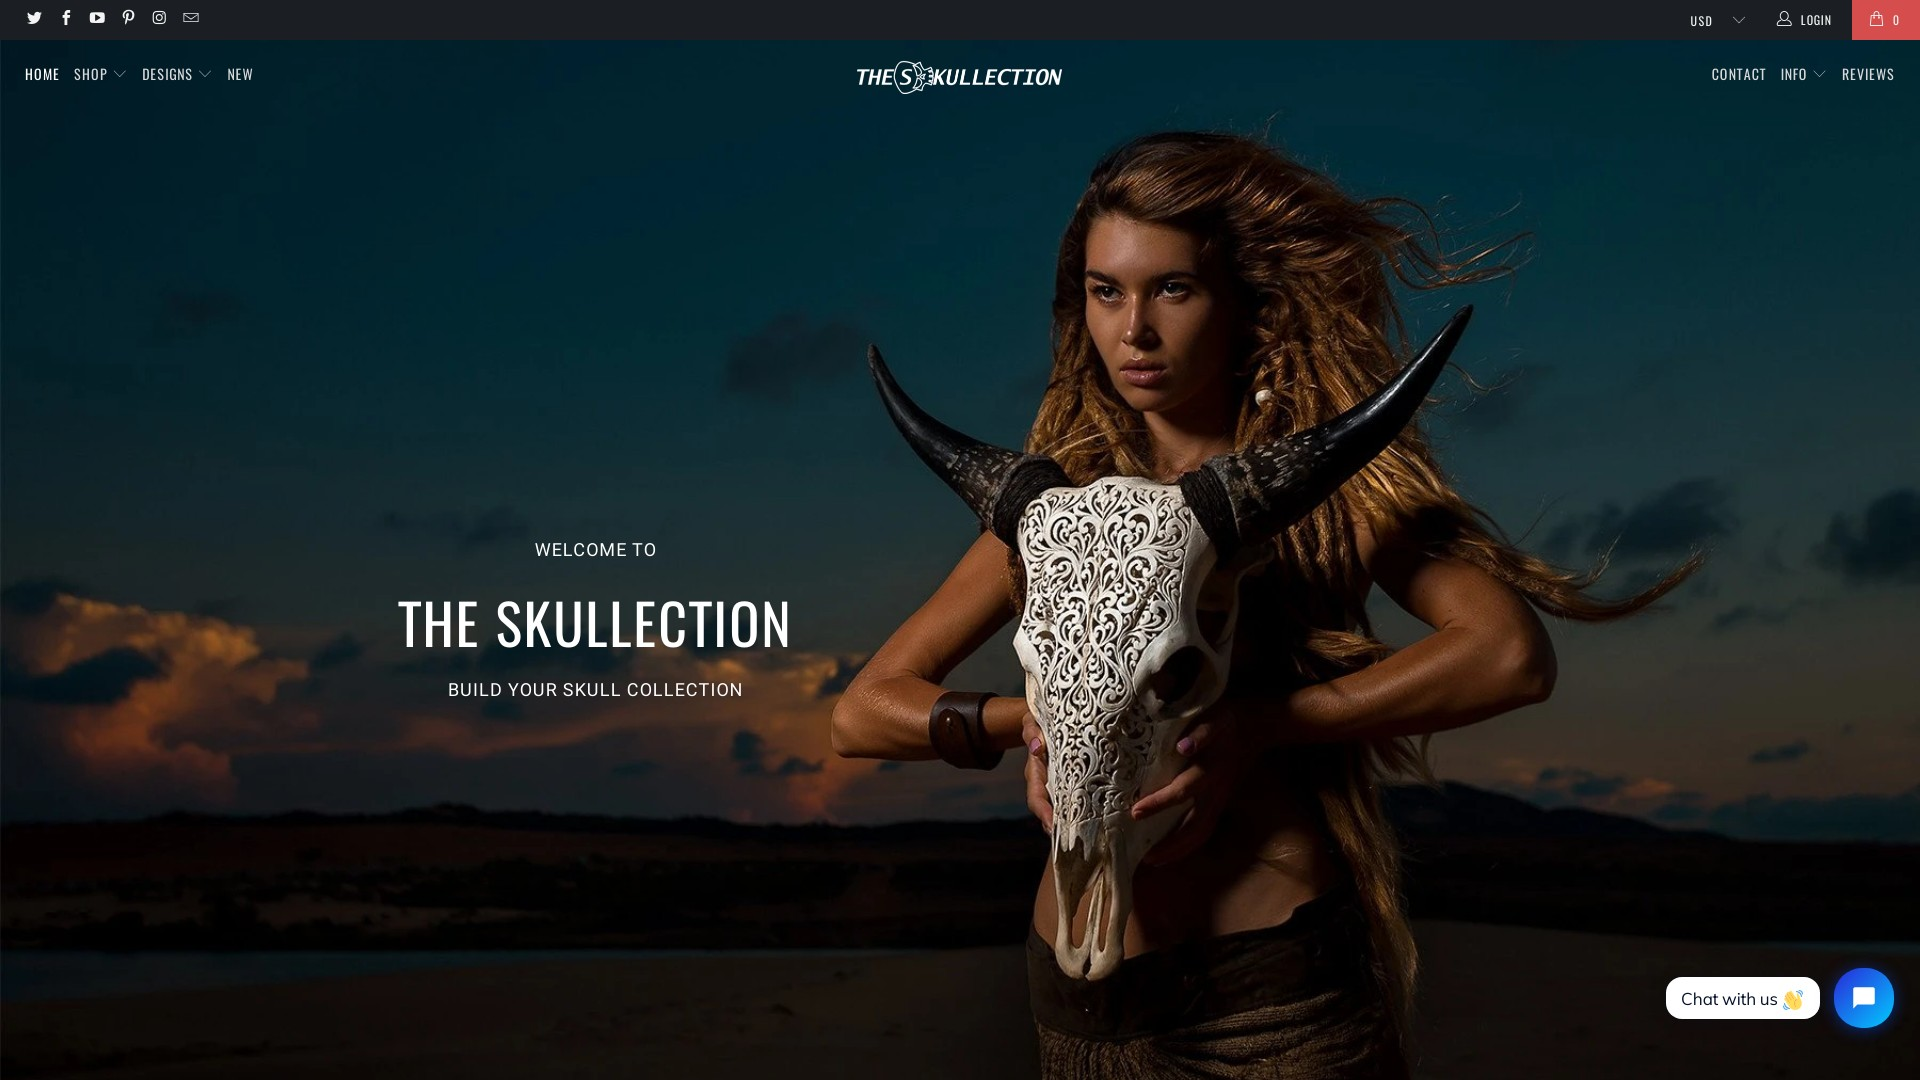 Is Theskullection a Scam? Review of the Online Store